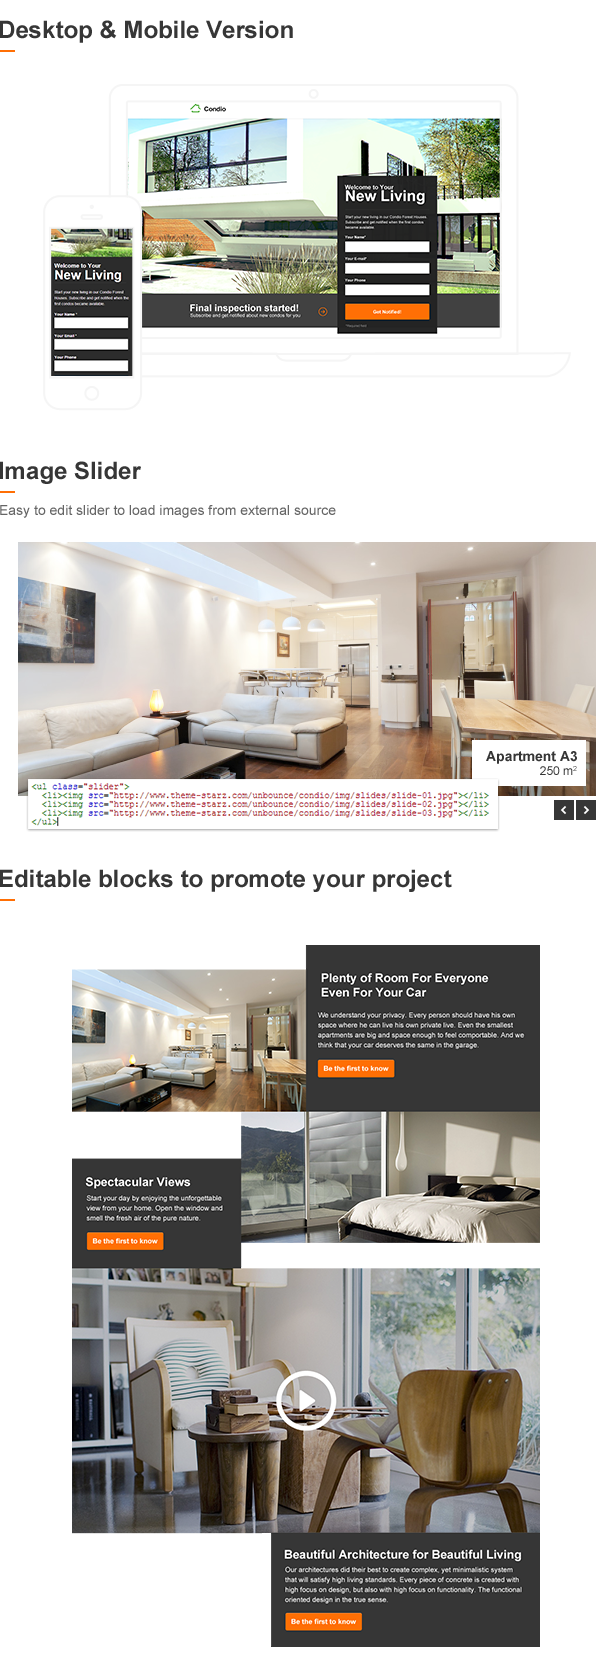 Condio - Real Estate Landing Page for Unbounce - 7